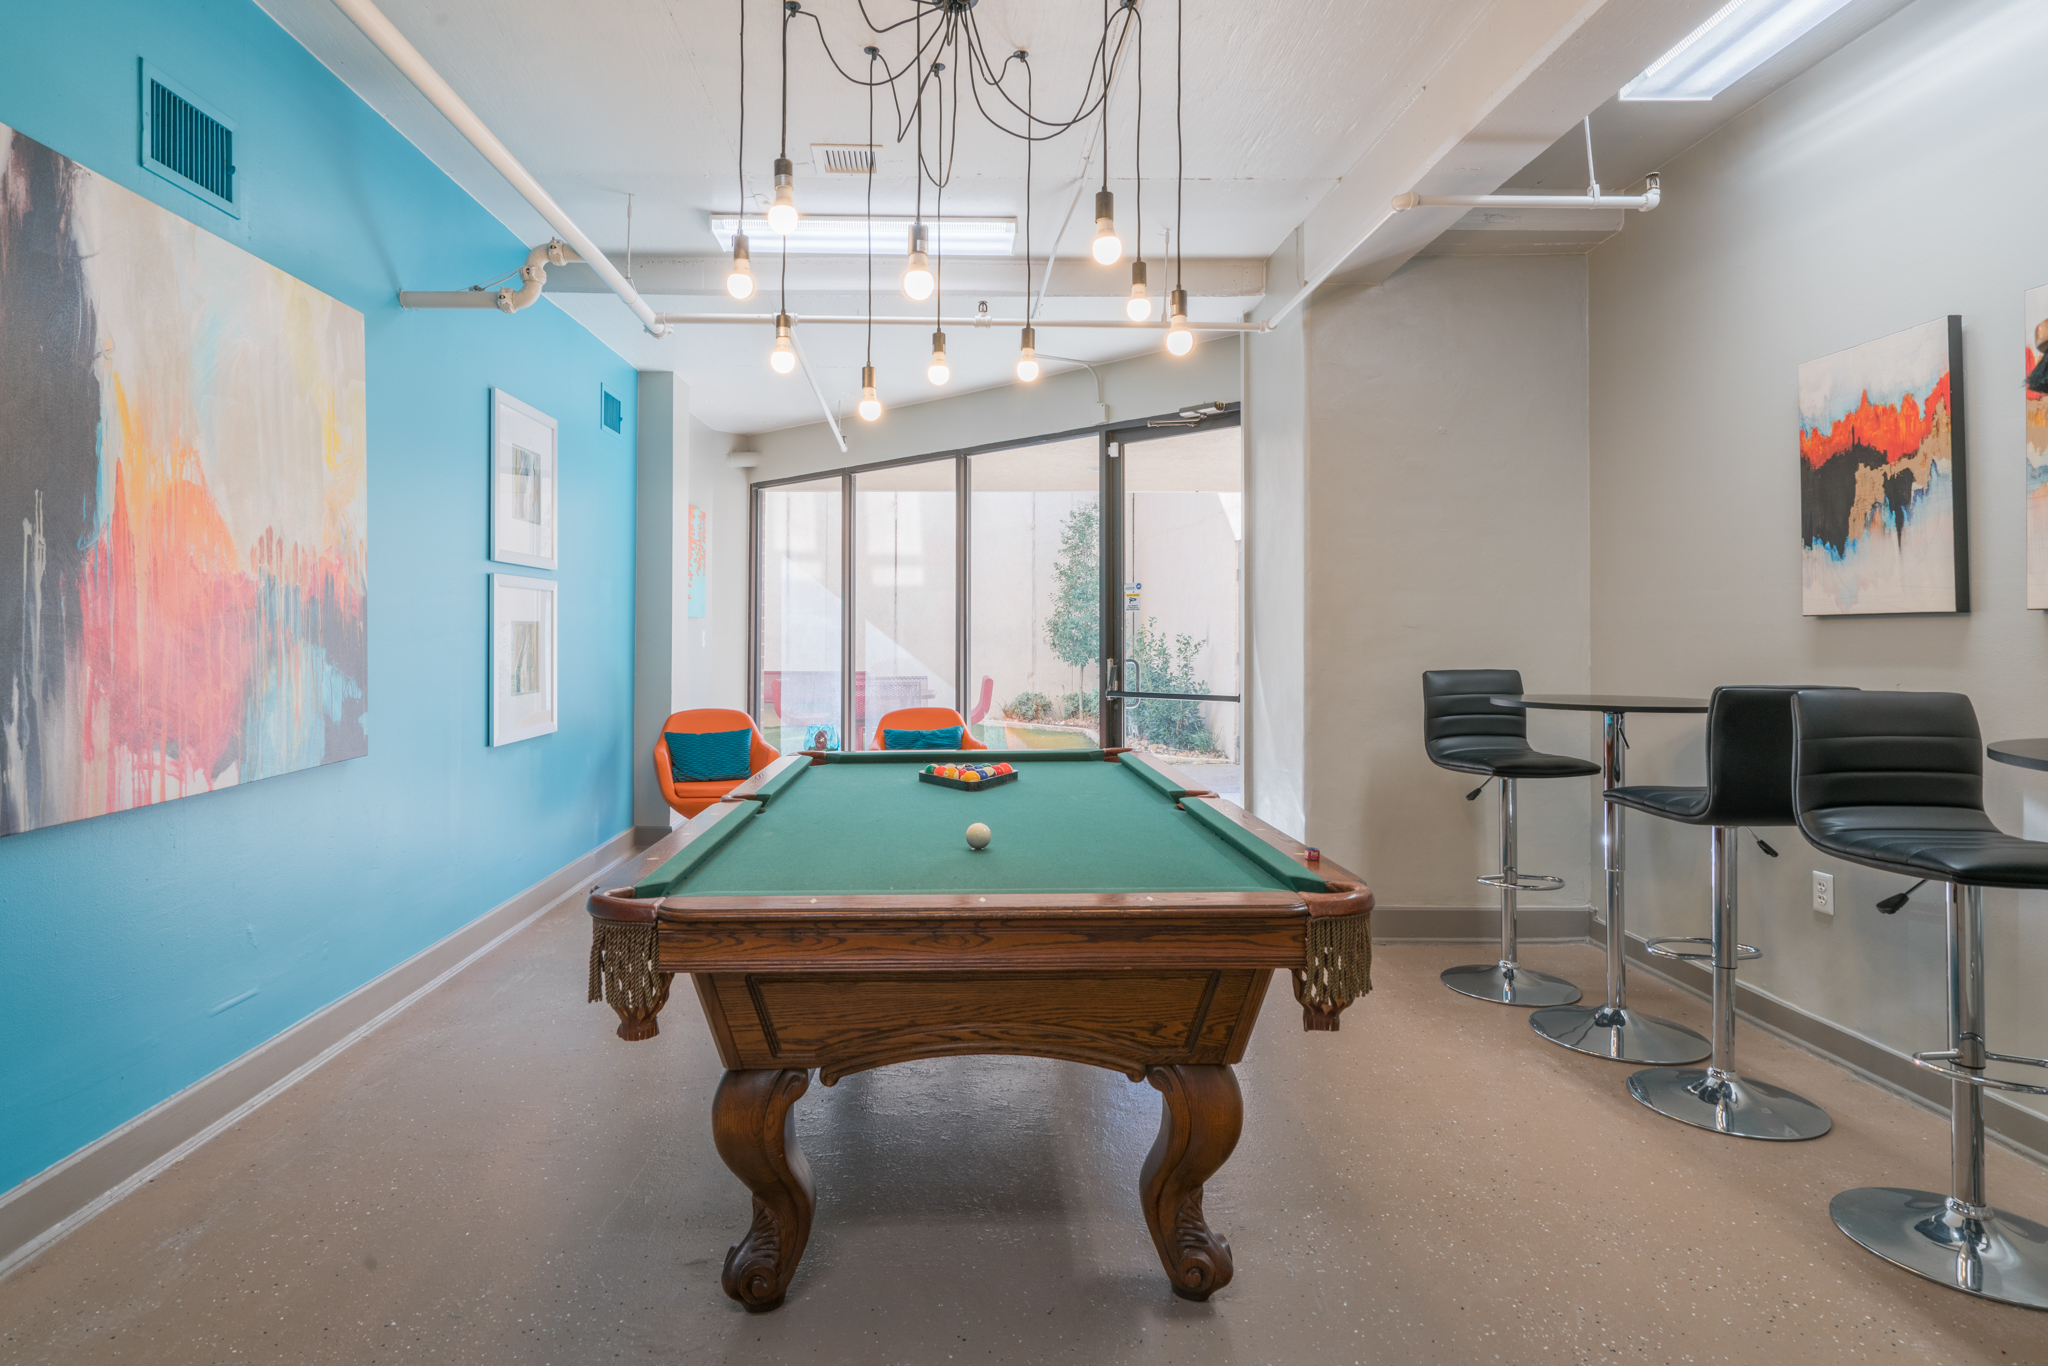 Professional game room design for The Enclave in San Antonio, TX